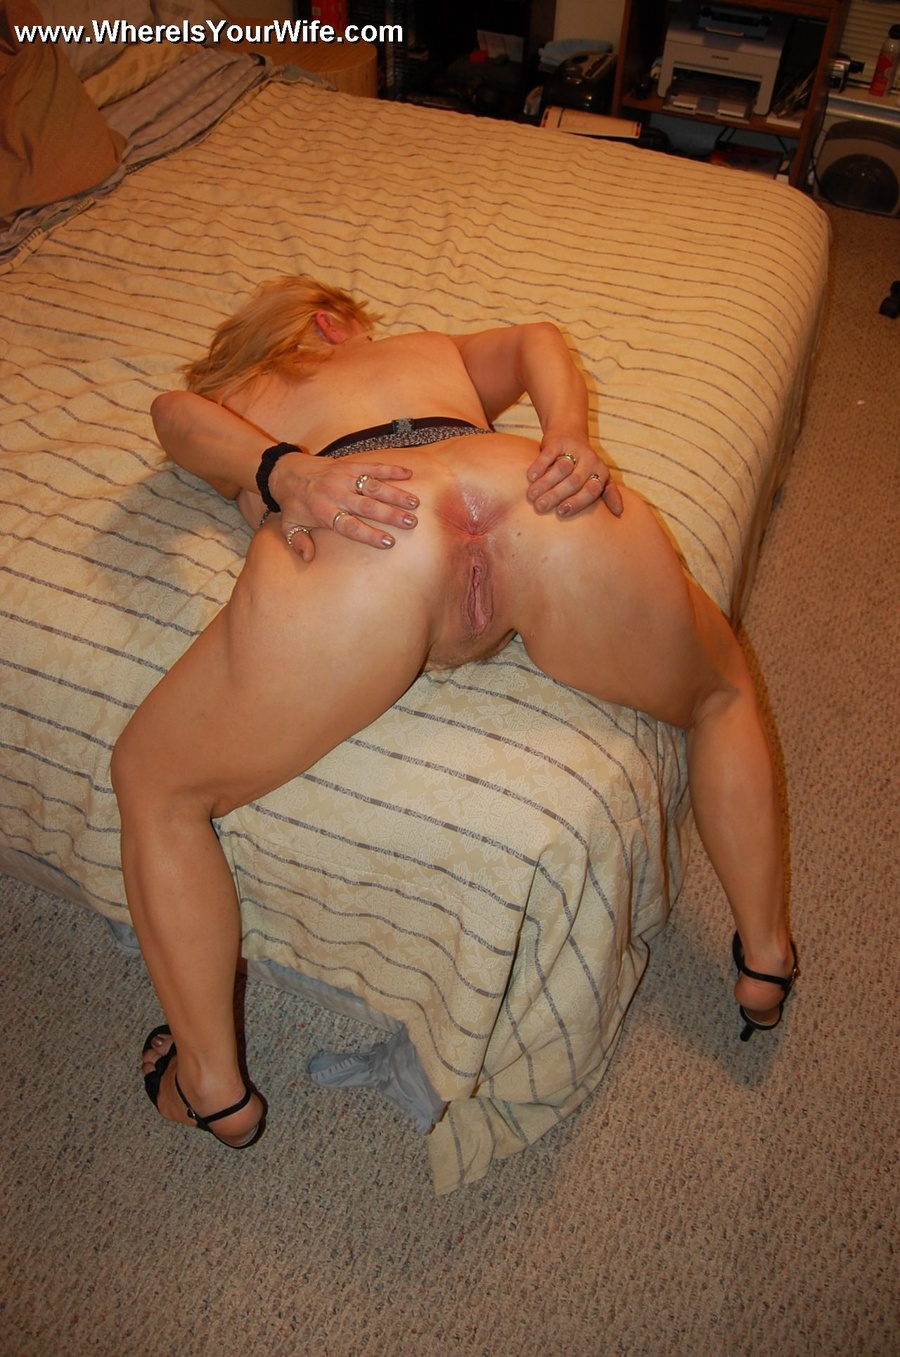 Your Wife Mature chubby blonde <b>wife</b> spreading her ass cheeks to sh <b></b>